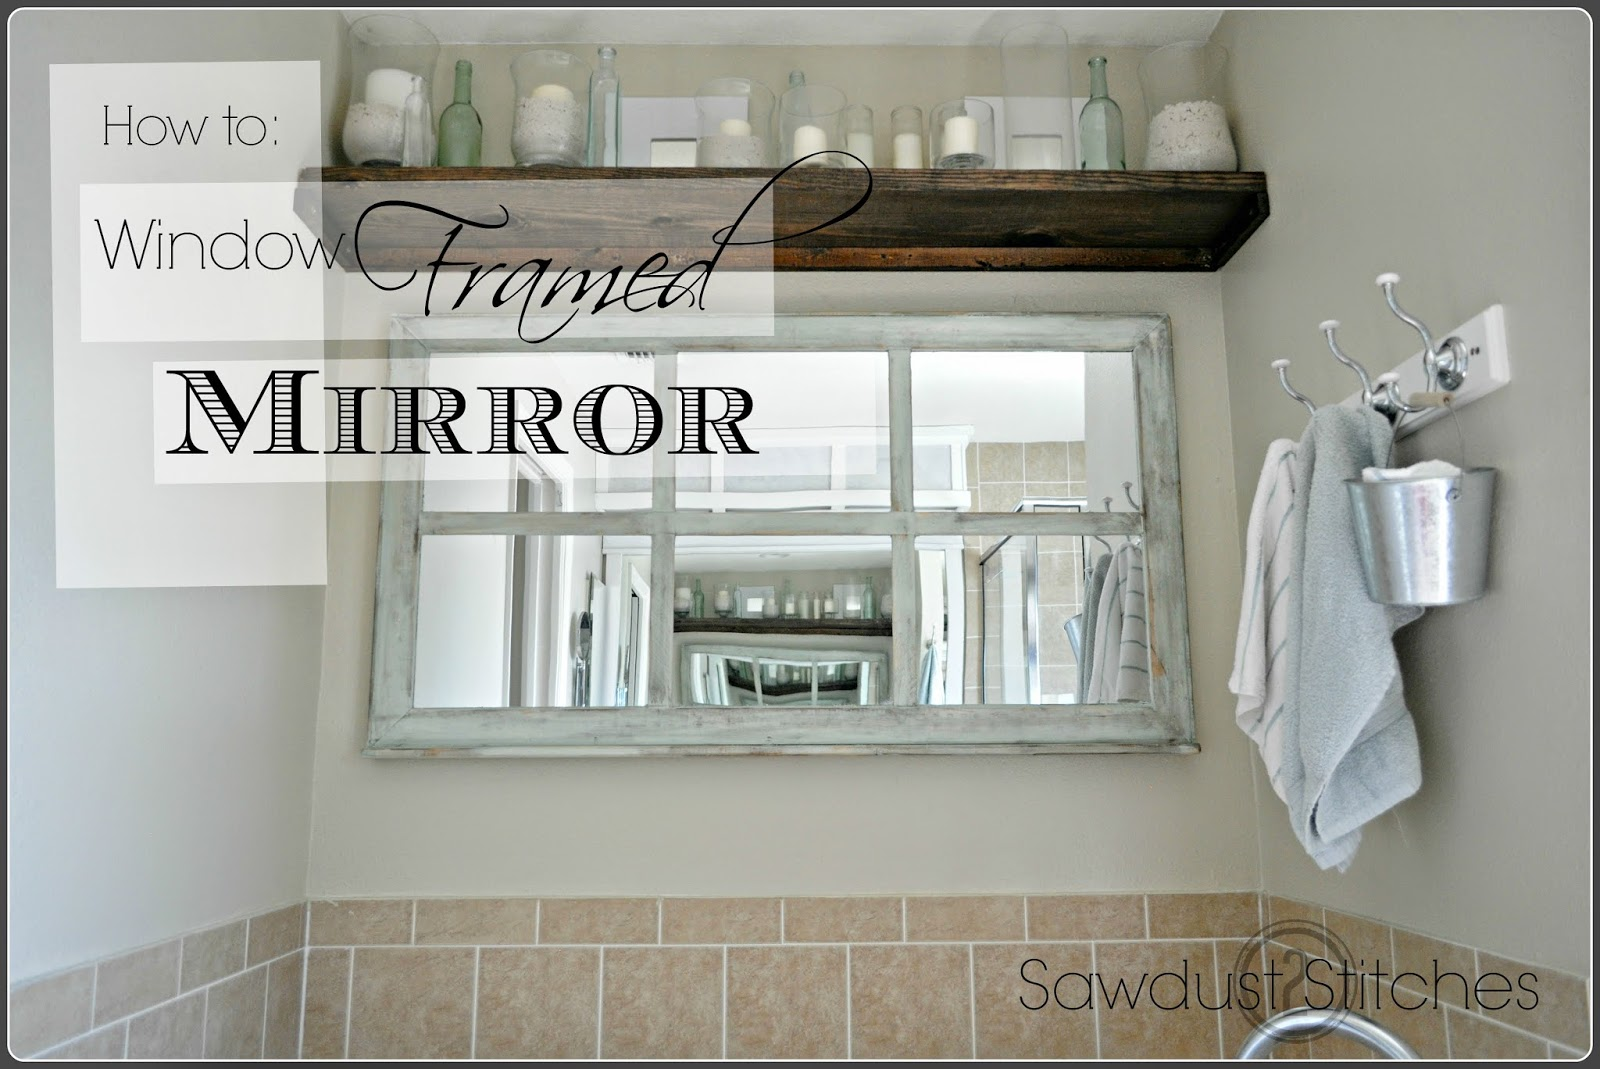 http://sewingandsanding.blogspot.com/2014/05/window-framed-mirror.html